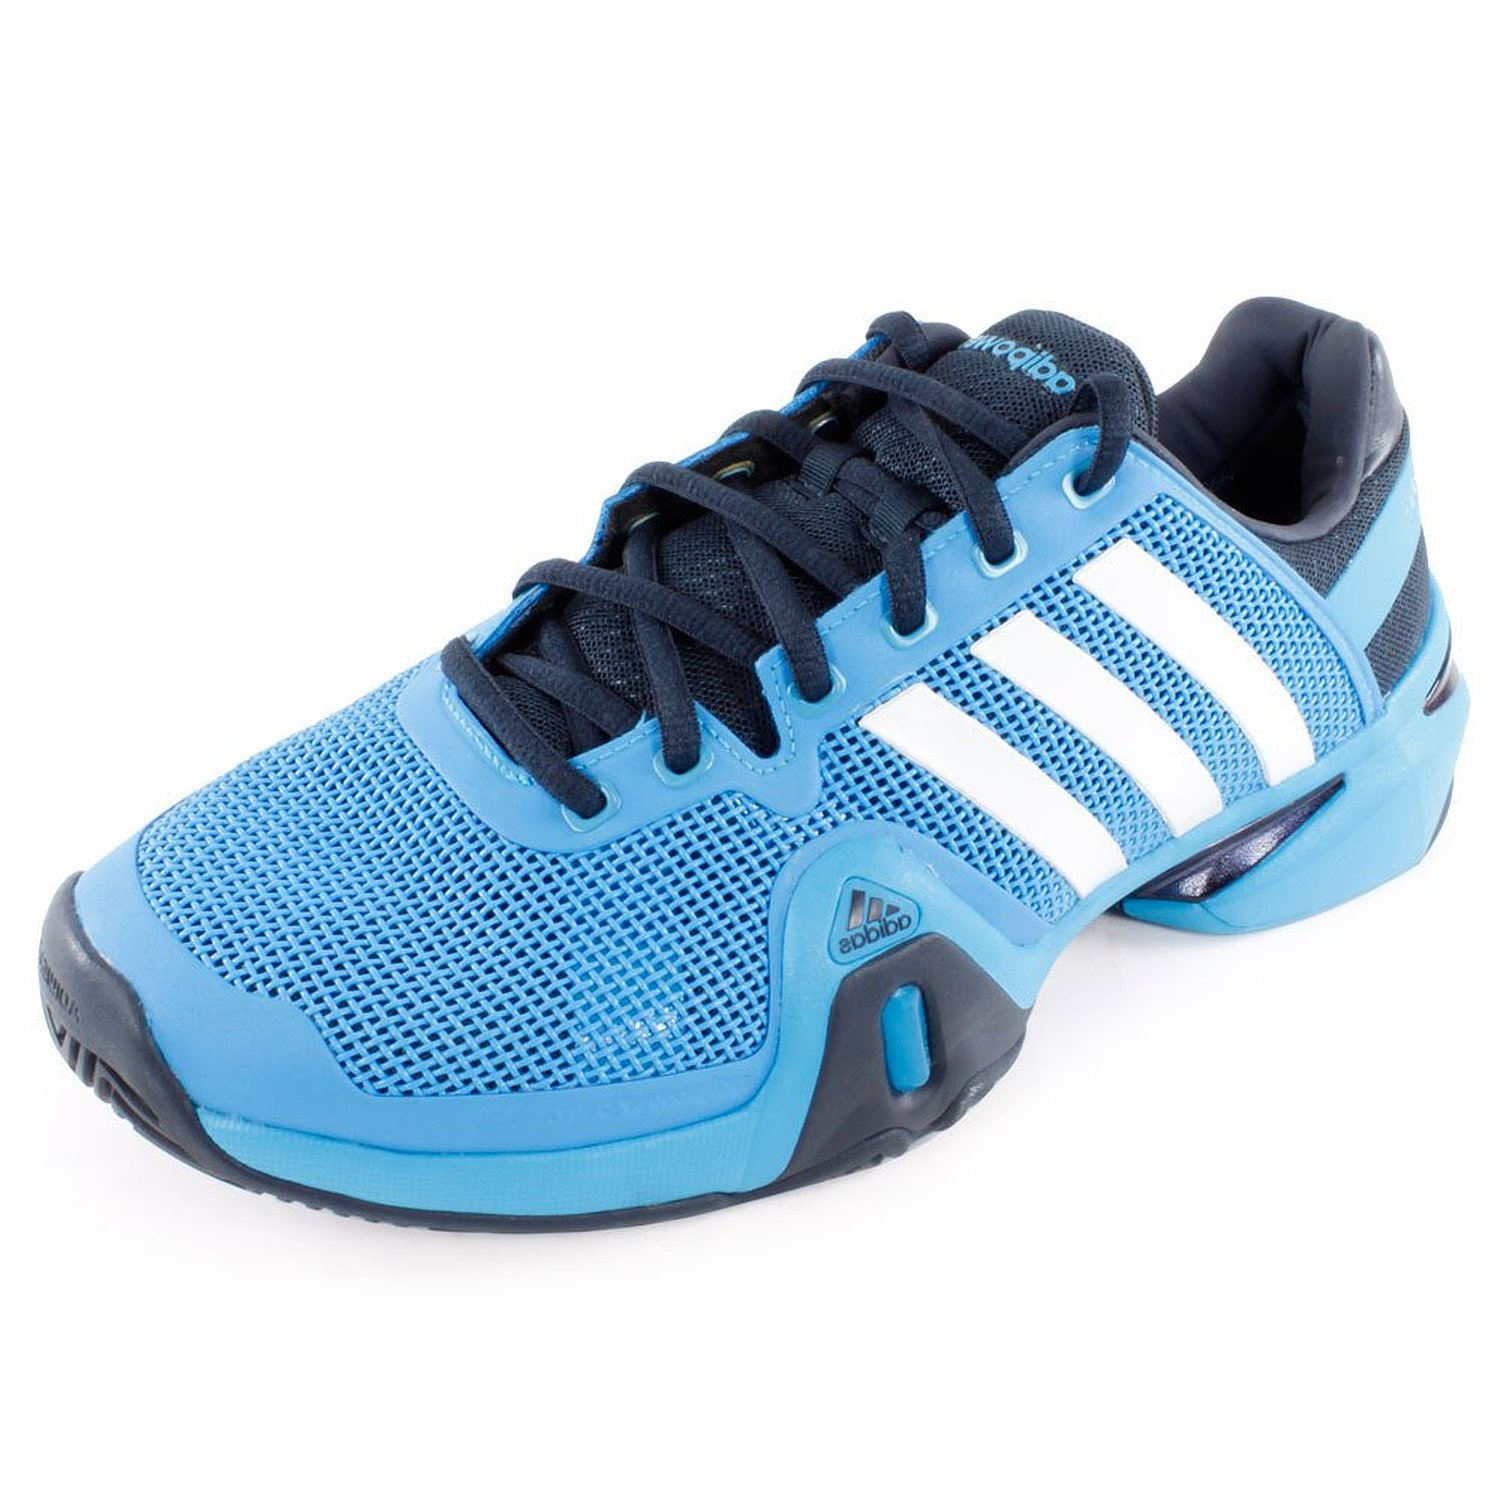 official photos ab1ff 542e4 Get Quotations · Adidas Mens Adipower Barricade 8 Tennis Shoes